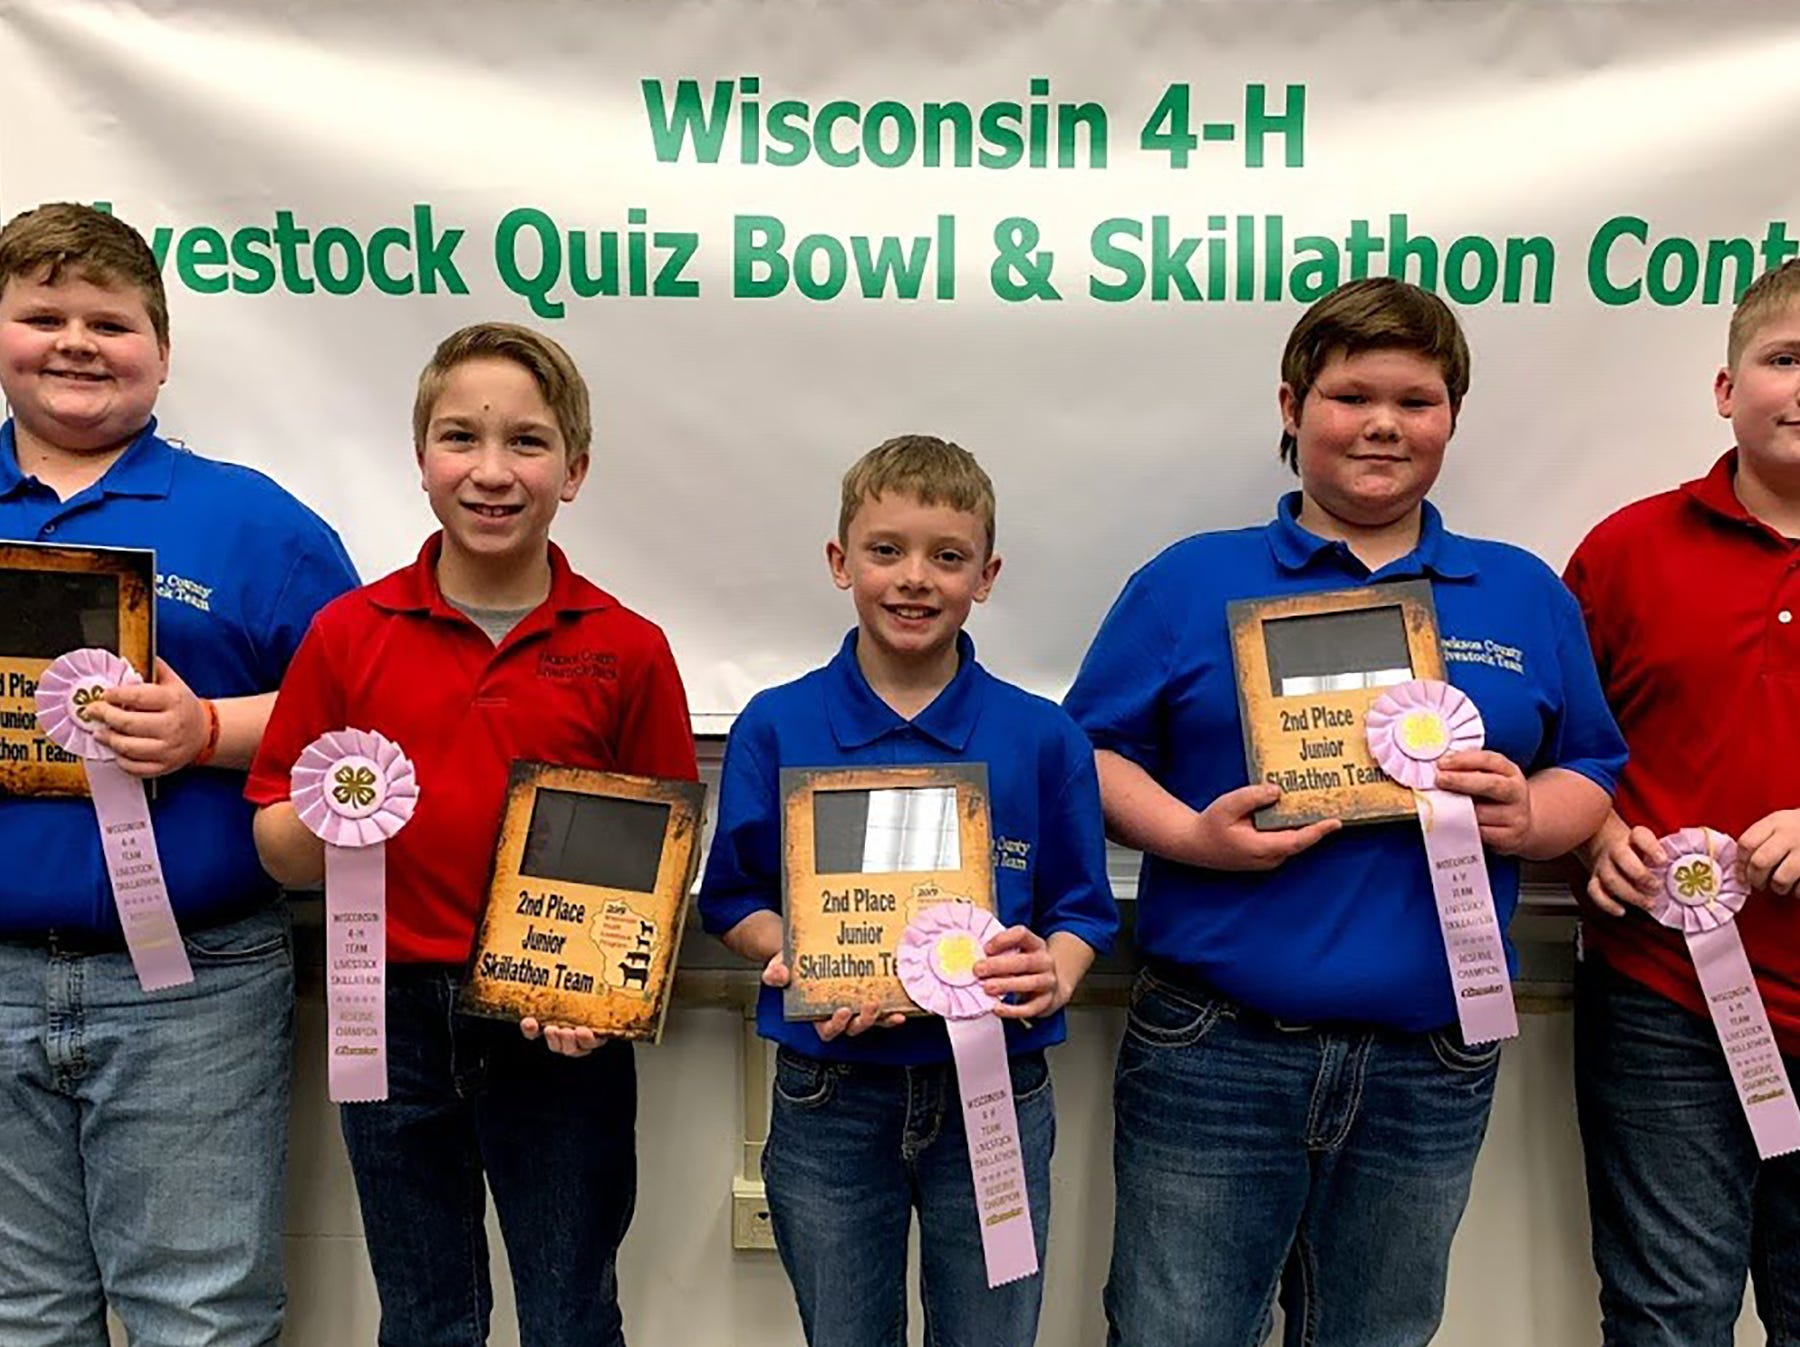 Second place Junior Skillathon team members from Jackson County are (from left) Doyle Hagen, Luke Fischer, Austin Olson, Jake Kling, Jack Laufenberg.